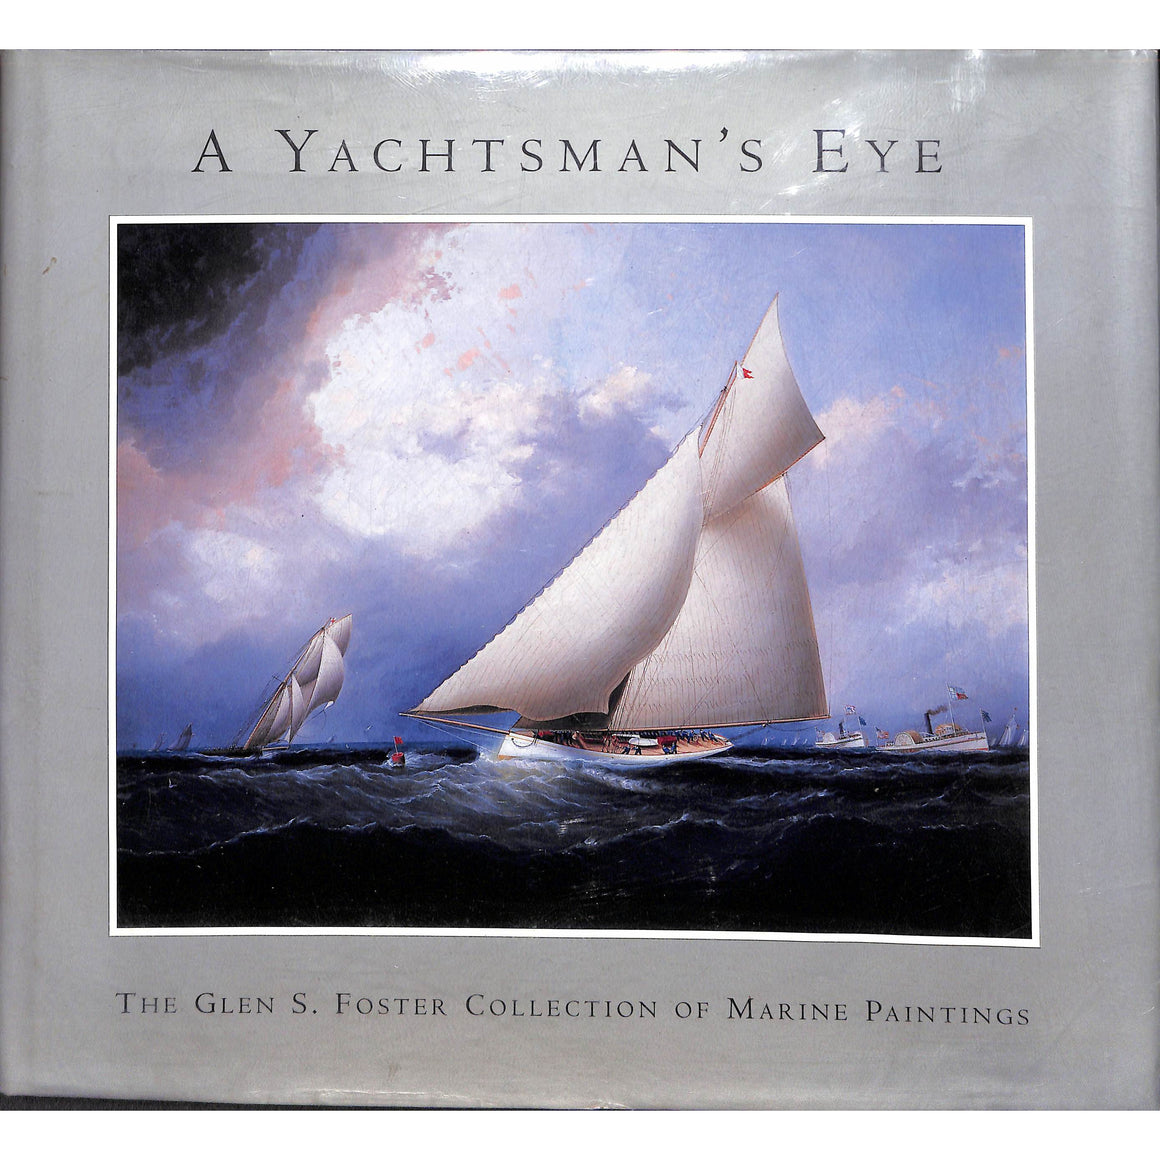 A Yachtsman's Eye: The Glen S Foster Collection of Marine Paintings